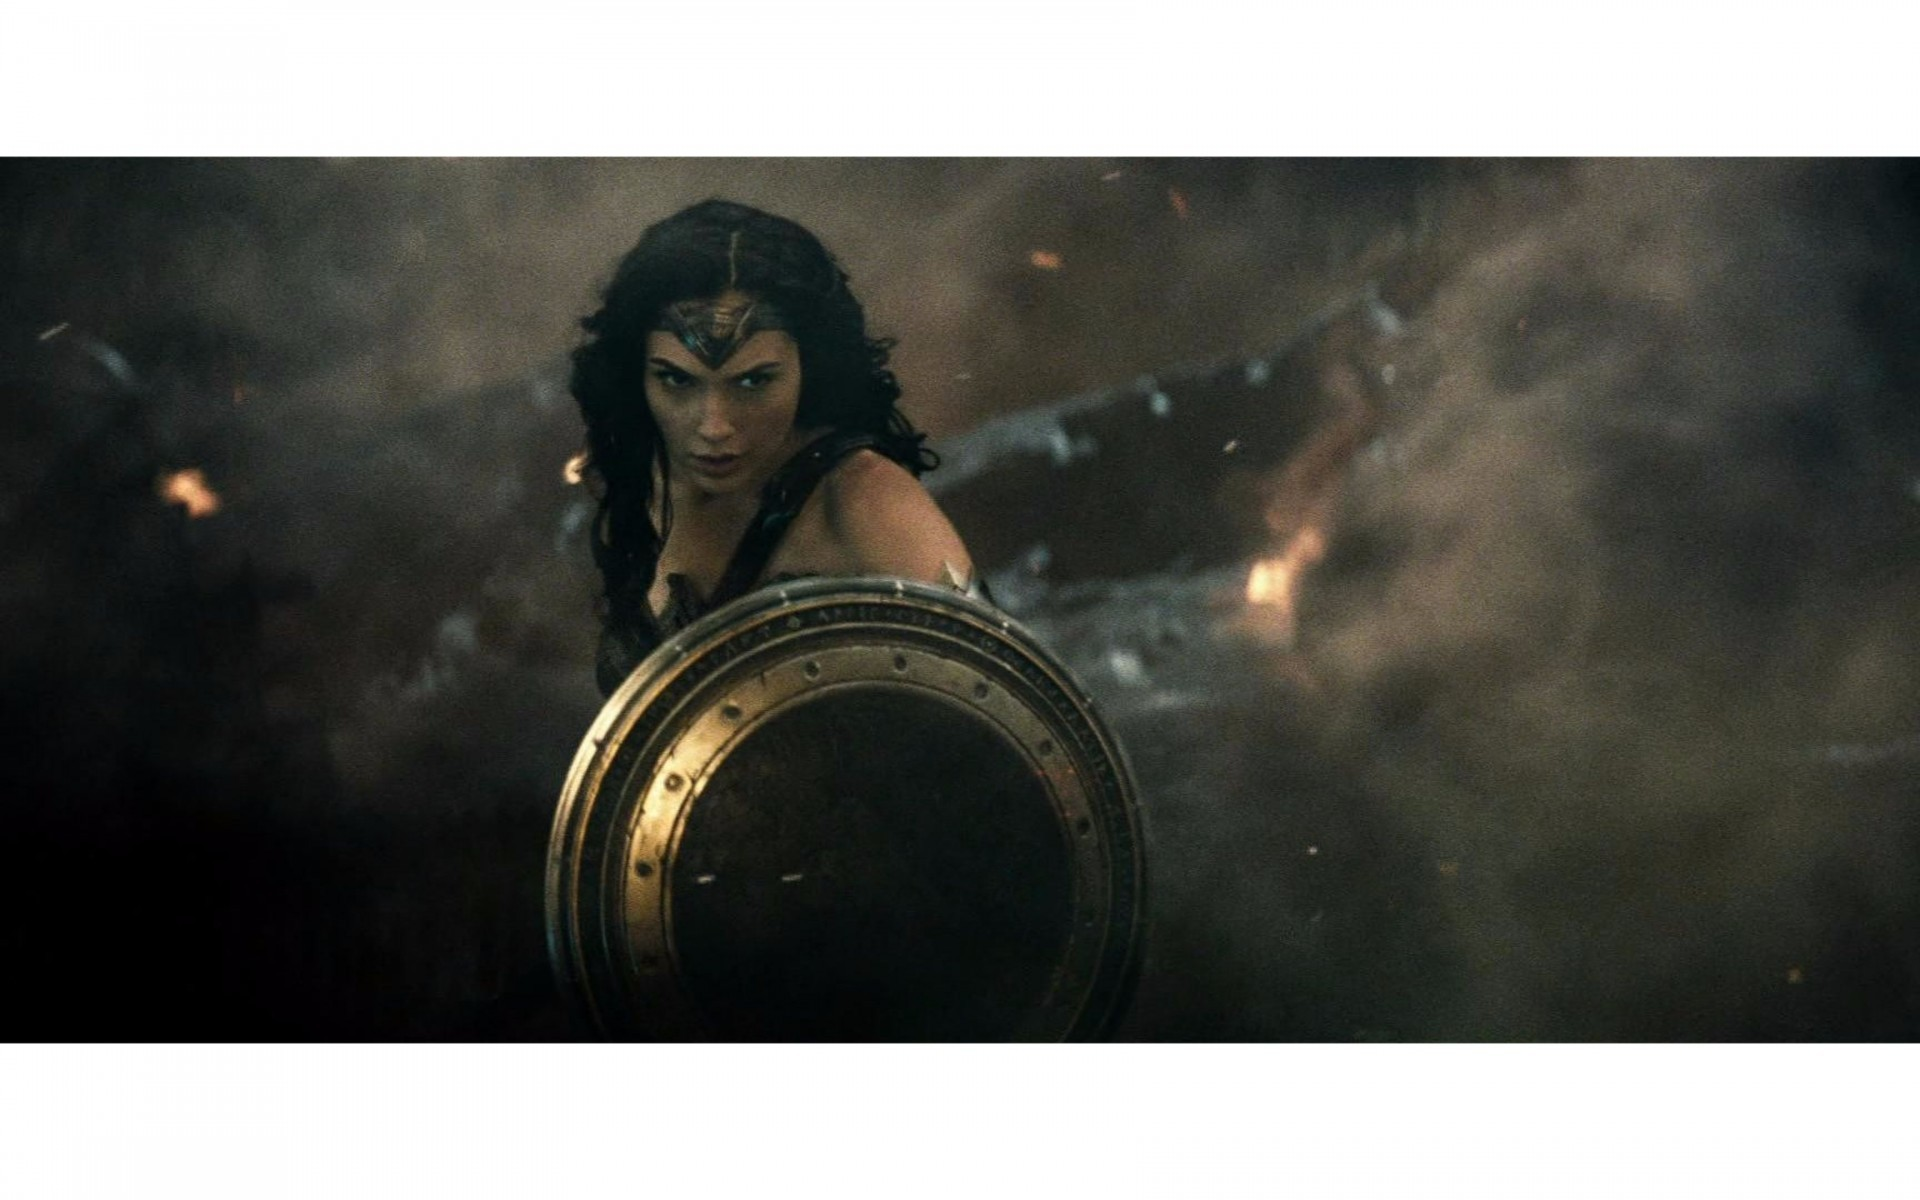 1920x1200 wonder woman movie wallpaper #700684